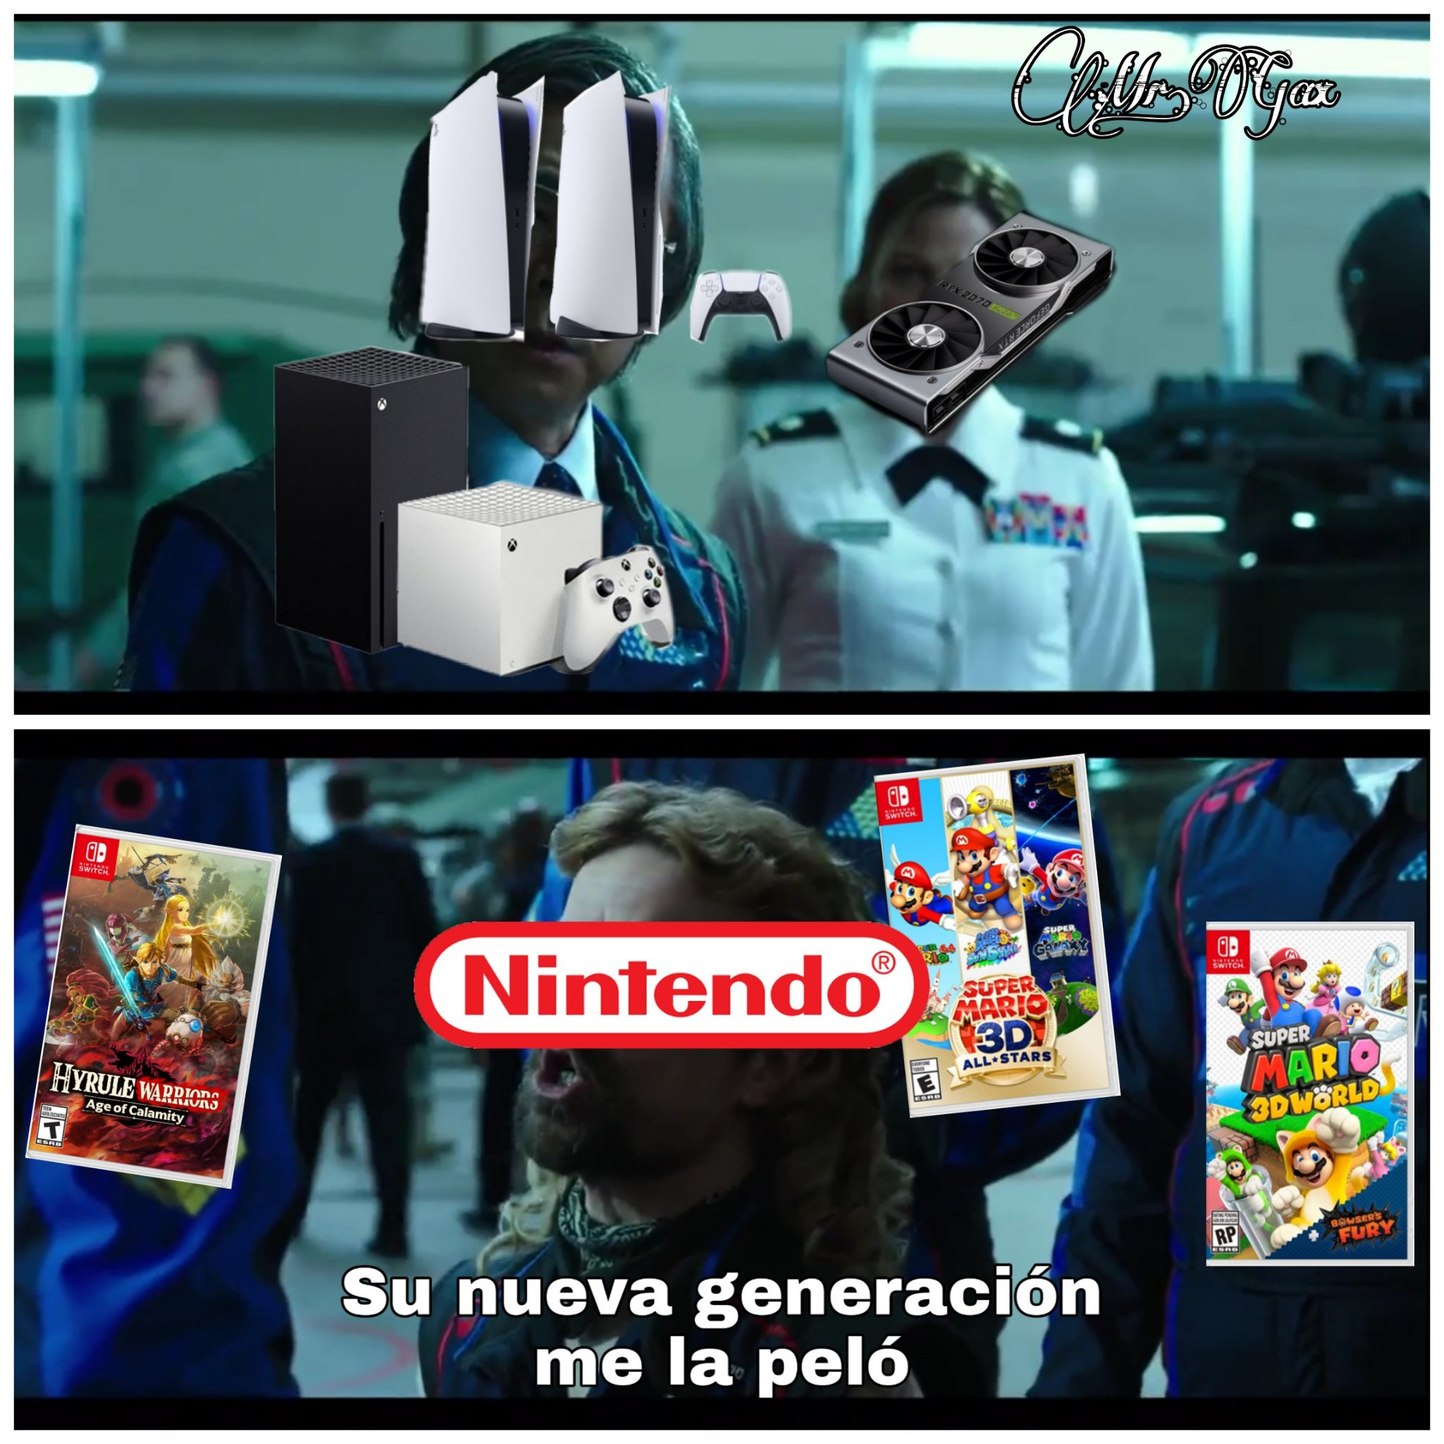 Solo me interesa el 3D All Stars - meme